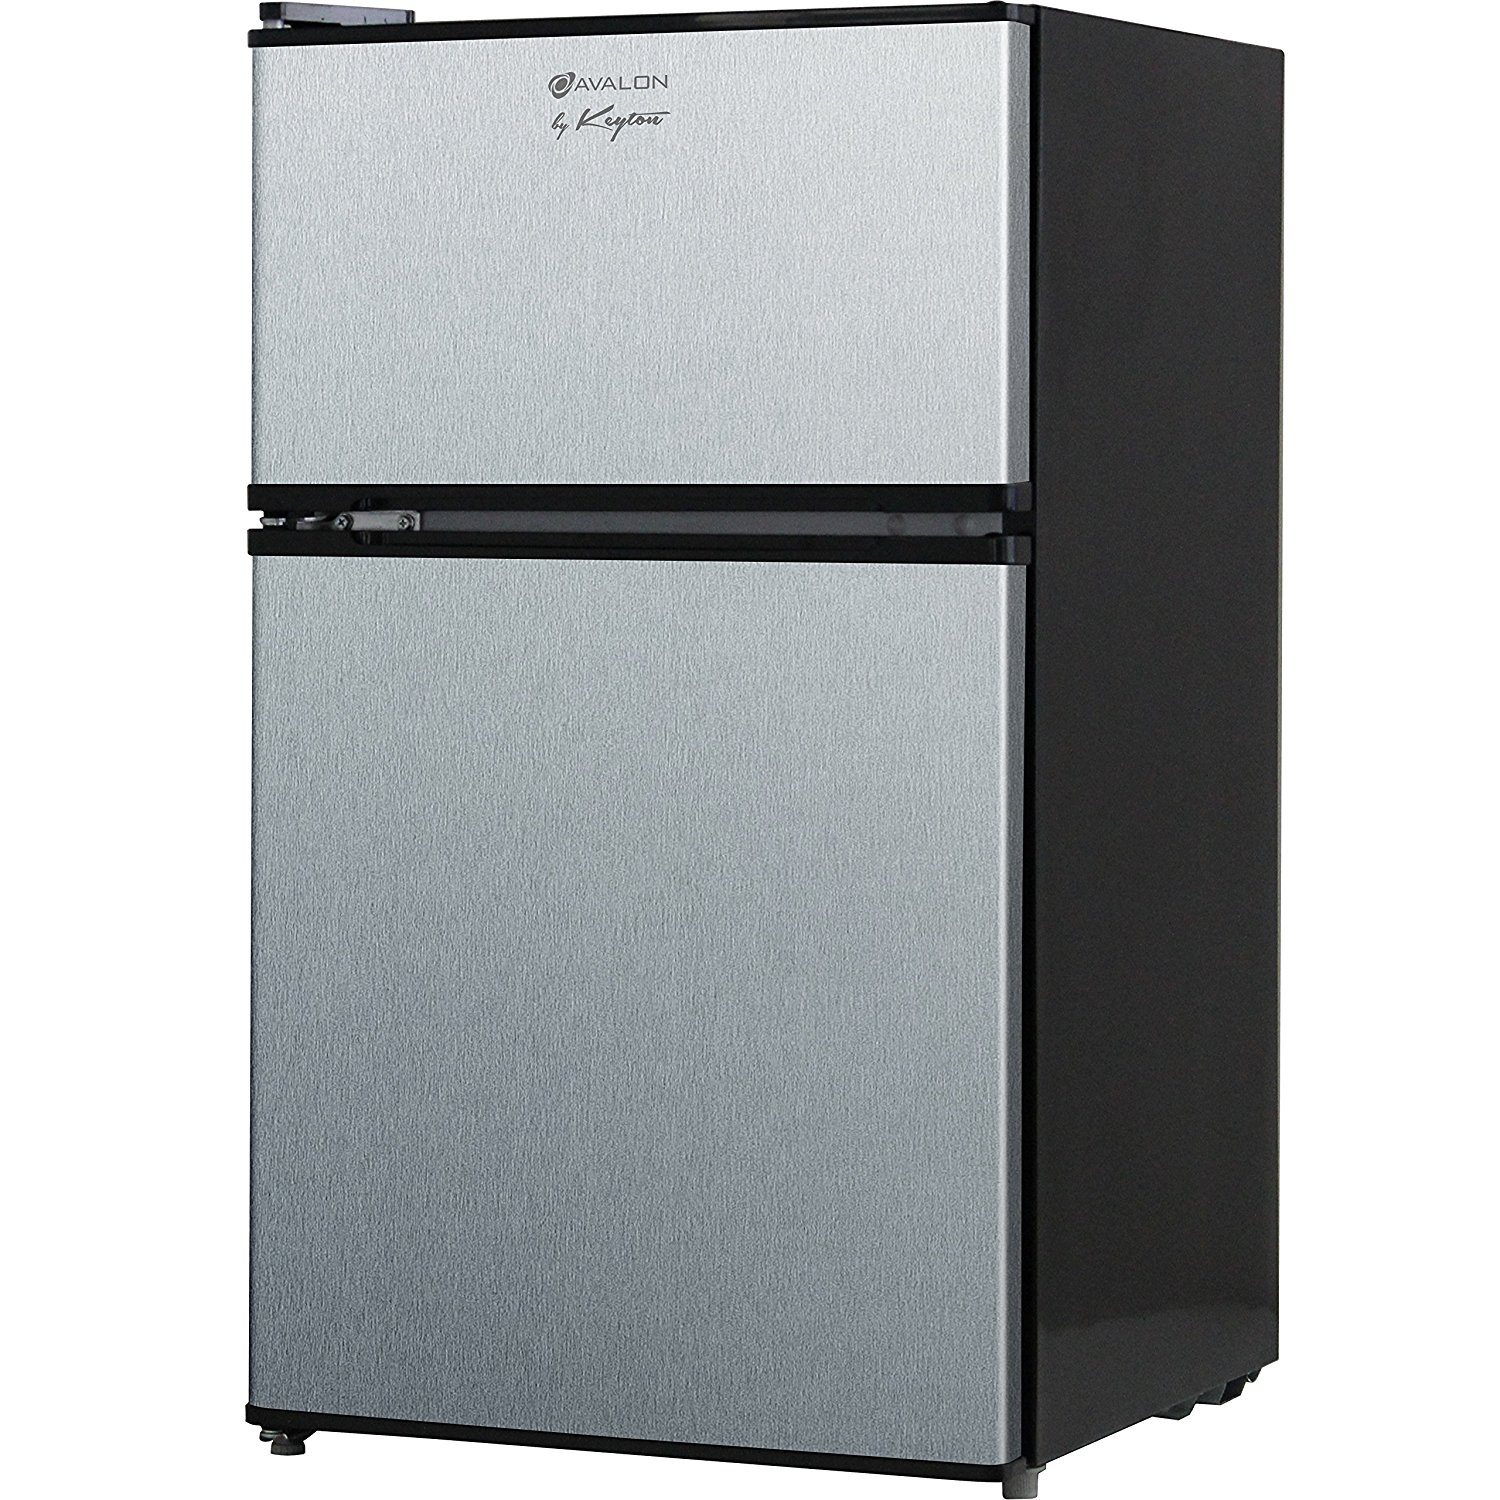 Avalon By Keyton Refrigerator And Freezer With Reversible